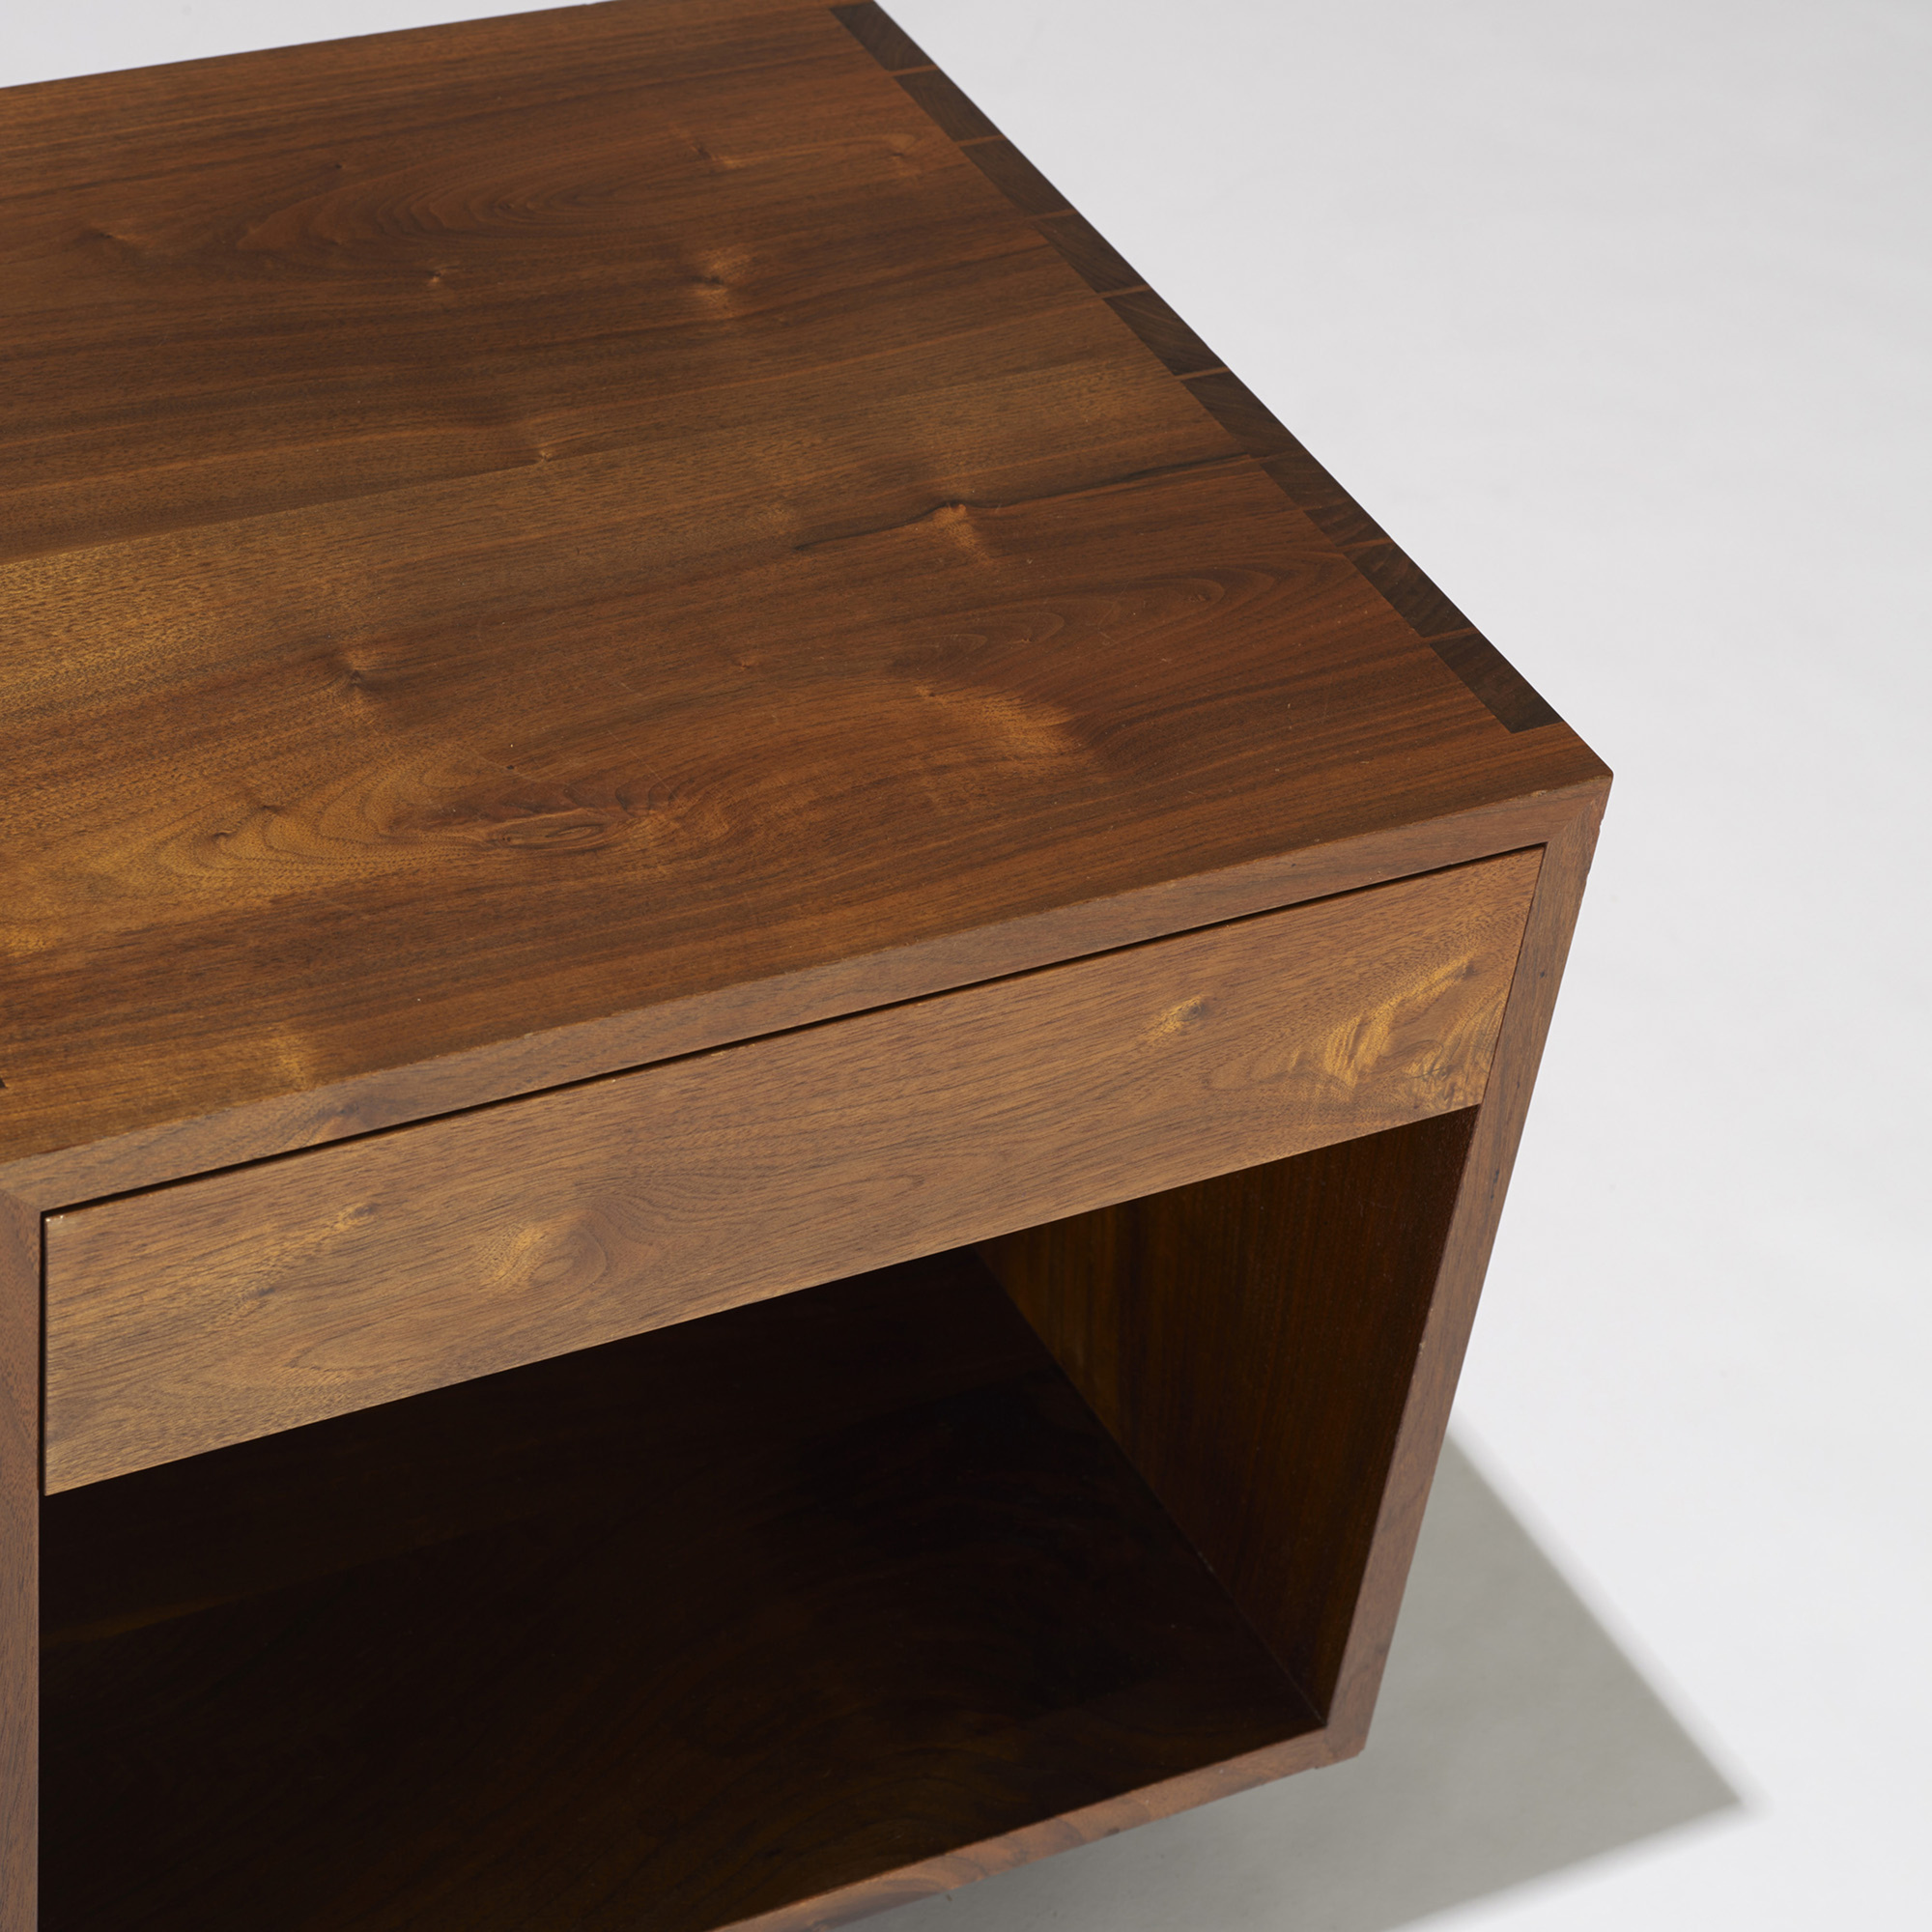 105 George Nakashima Swett Nightstands Pair Design 17 October 2013 Auctions Wright Auctions Of Art And Design